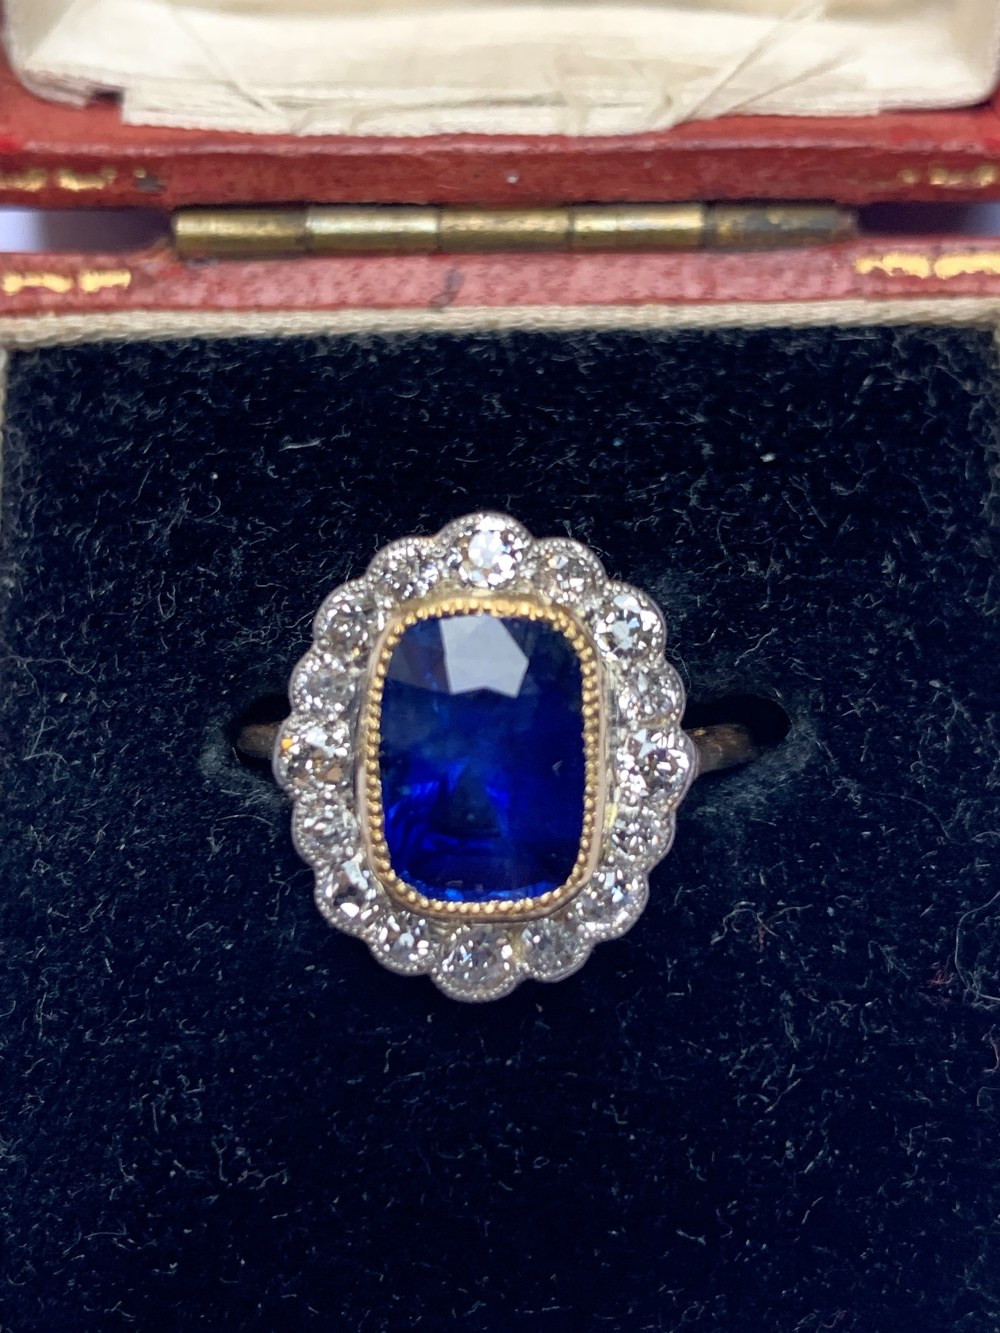 A certified natural 3.03 carat Sri-Lankan sapphire & diamond oval cluster ring in 18ct yellow